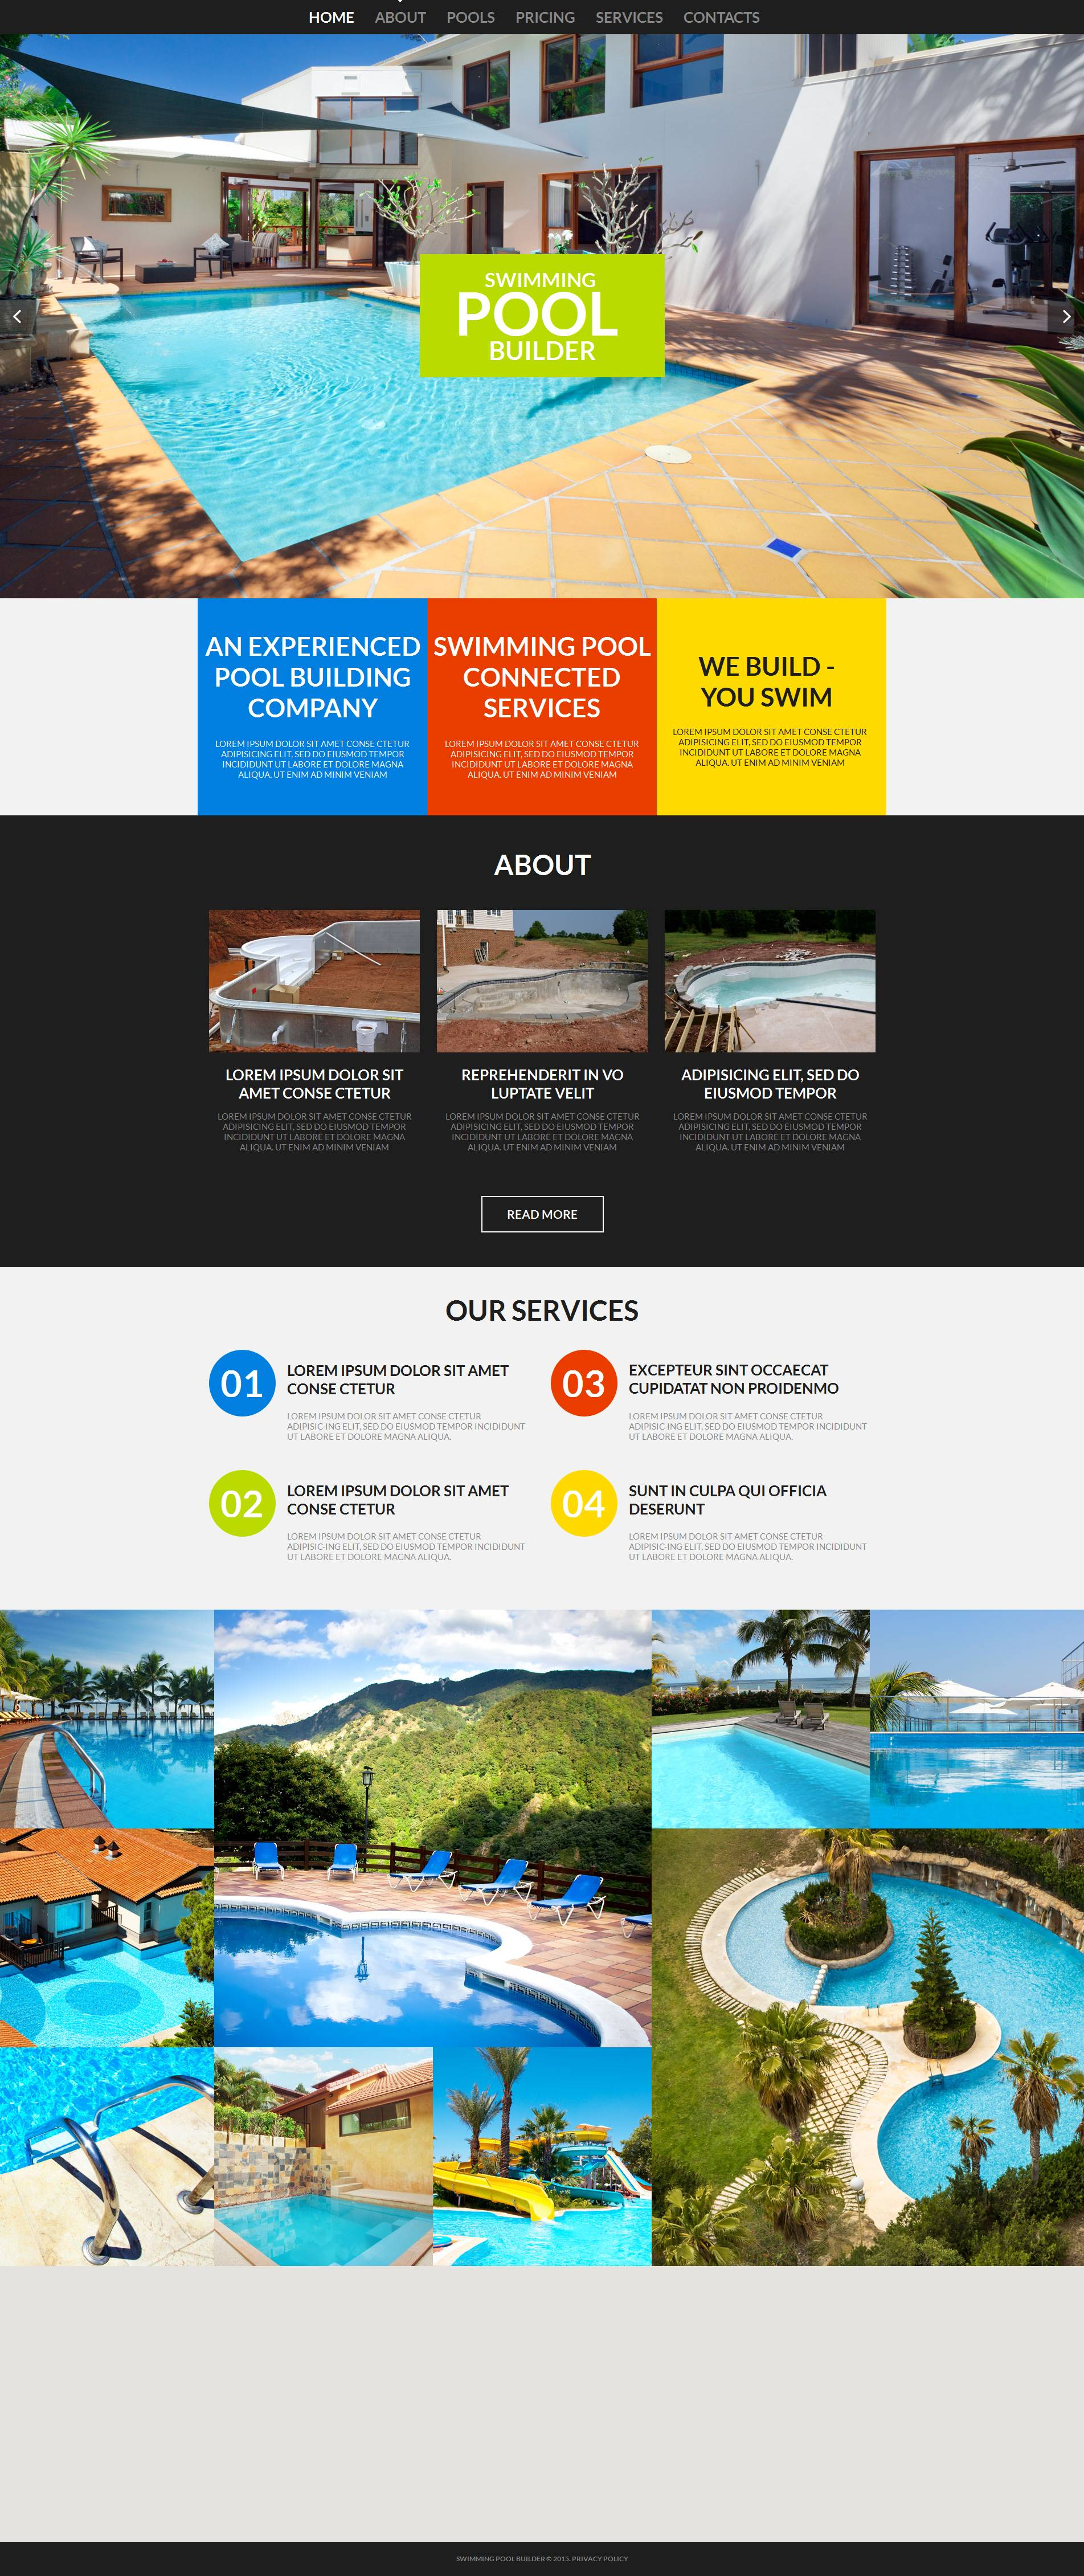 The Swimming Pool Moto CMS HTML Design 53061, one of the best Moto CMS HTML templates of its kind (maintenance services), also known as swimming pool Moto CMS HTML template, builder Moto CMS HTML template, pool Moto CMS HTML template, construction Moto CMS HTML template, maintenance company Moto CMS HTML template, services Moto CMS HTML template, estimate Moto CMS HTML template, cleaner Moto CMS HTML template, dirty Moto CMS HTML template, testimonials Moto CMS HTML template, professional Moto CMS HTML template, workteam Moto CMS HTML template, tips Moto CMS HTML template, client Moto CMS HTML template, price Moto CMS HTML template, tidying up Moto CMS HTML template, sponge Moto CMS HTML template, decoration Moto CMS HTML template, preventative Moto CMS HTML template, plumbing Moto CMS HTML template, repair Moto CMS HTML template, resurfacing Moto CMS HTML template, painting Moto CMS HTML template, fiberglass Moto CMS HTML template, plaster Moto CMS HTML template, deck Moto CMS HTML template, drainage Moto CMS HTML template, renovation and related with swimming pool, builder, pool, construction, maintenance company, services, estimate, cleaner, dirty, testimonials, professional, workteam, tips, client, price, tidying up, sponge, decoration, preventative, plumbing, repair, resurfacing, painting, fiberglass, plaster, deck, drainage, renovation, etc.